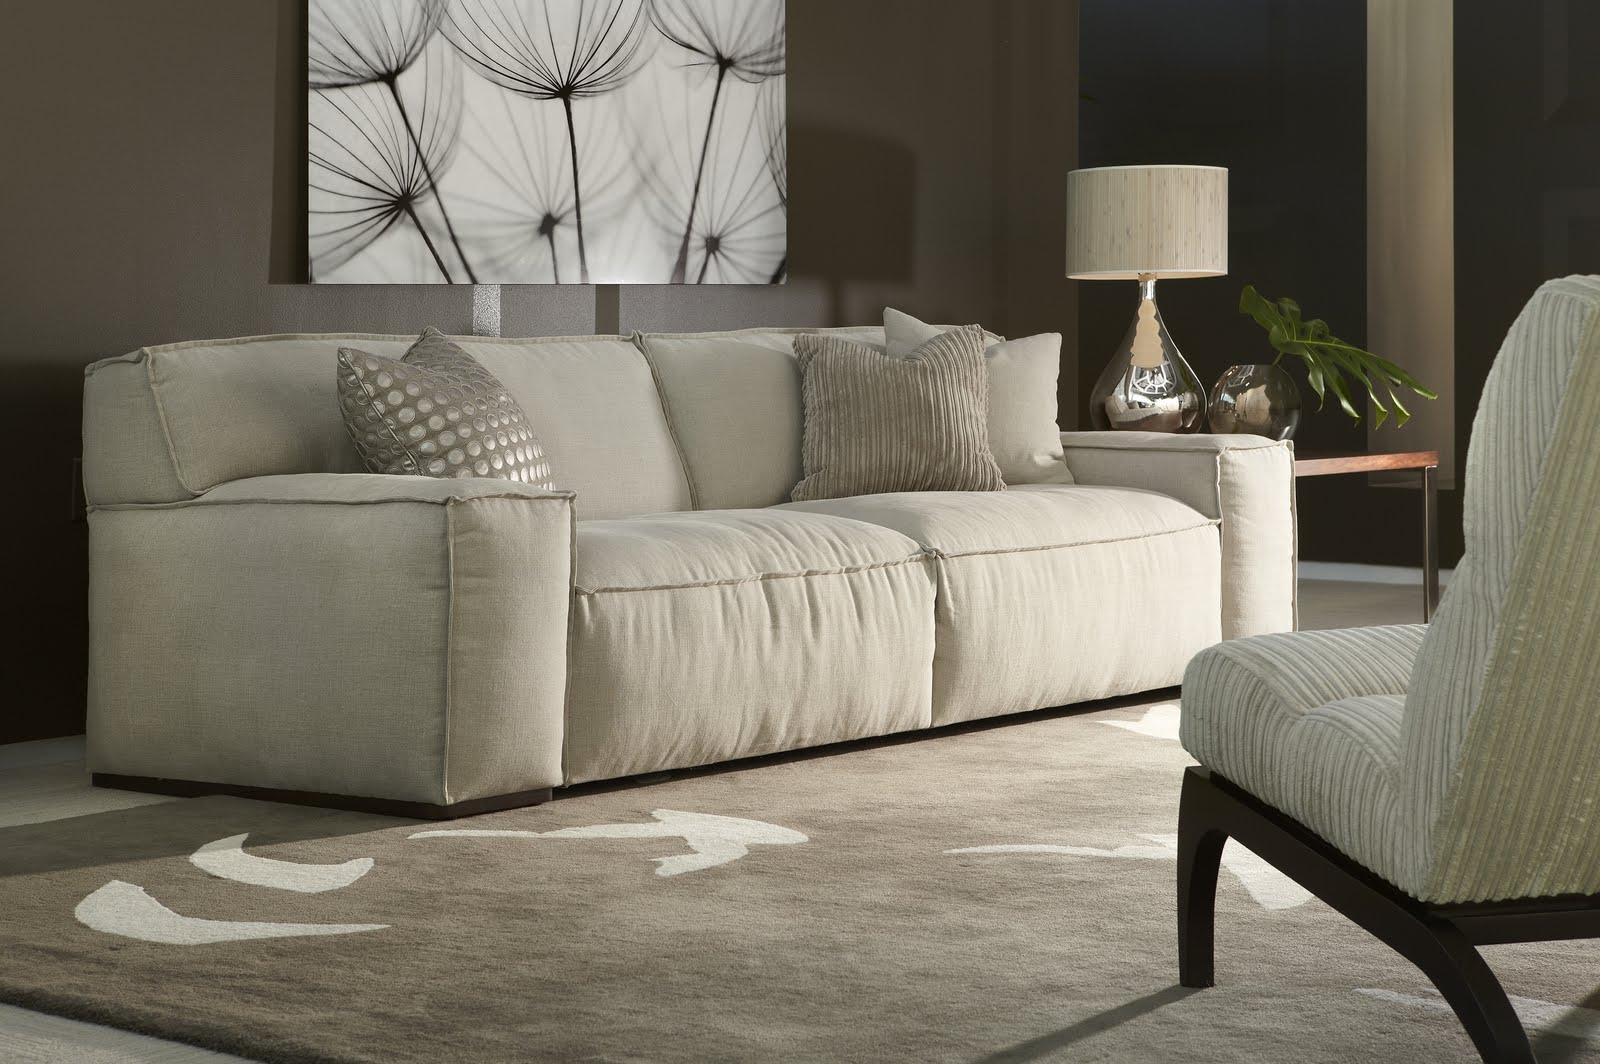 Sofas Center : 02Rosewooddownsofa L Down Filled Sofa Sectional Diy Regarding Down Filled Sofa Sectional (View 2 of 15)